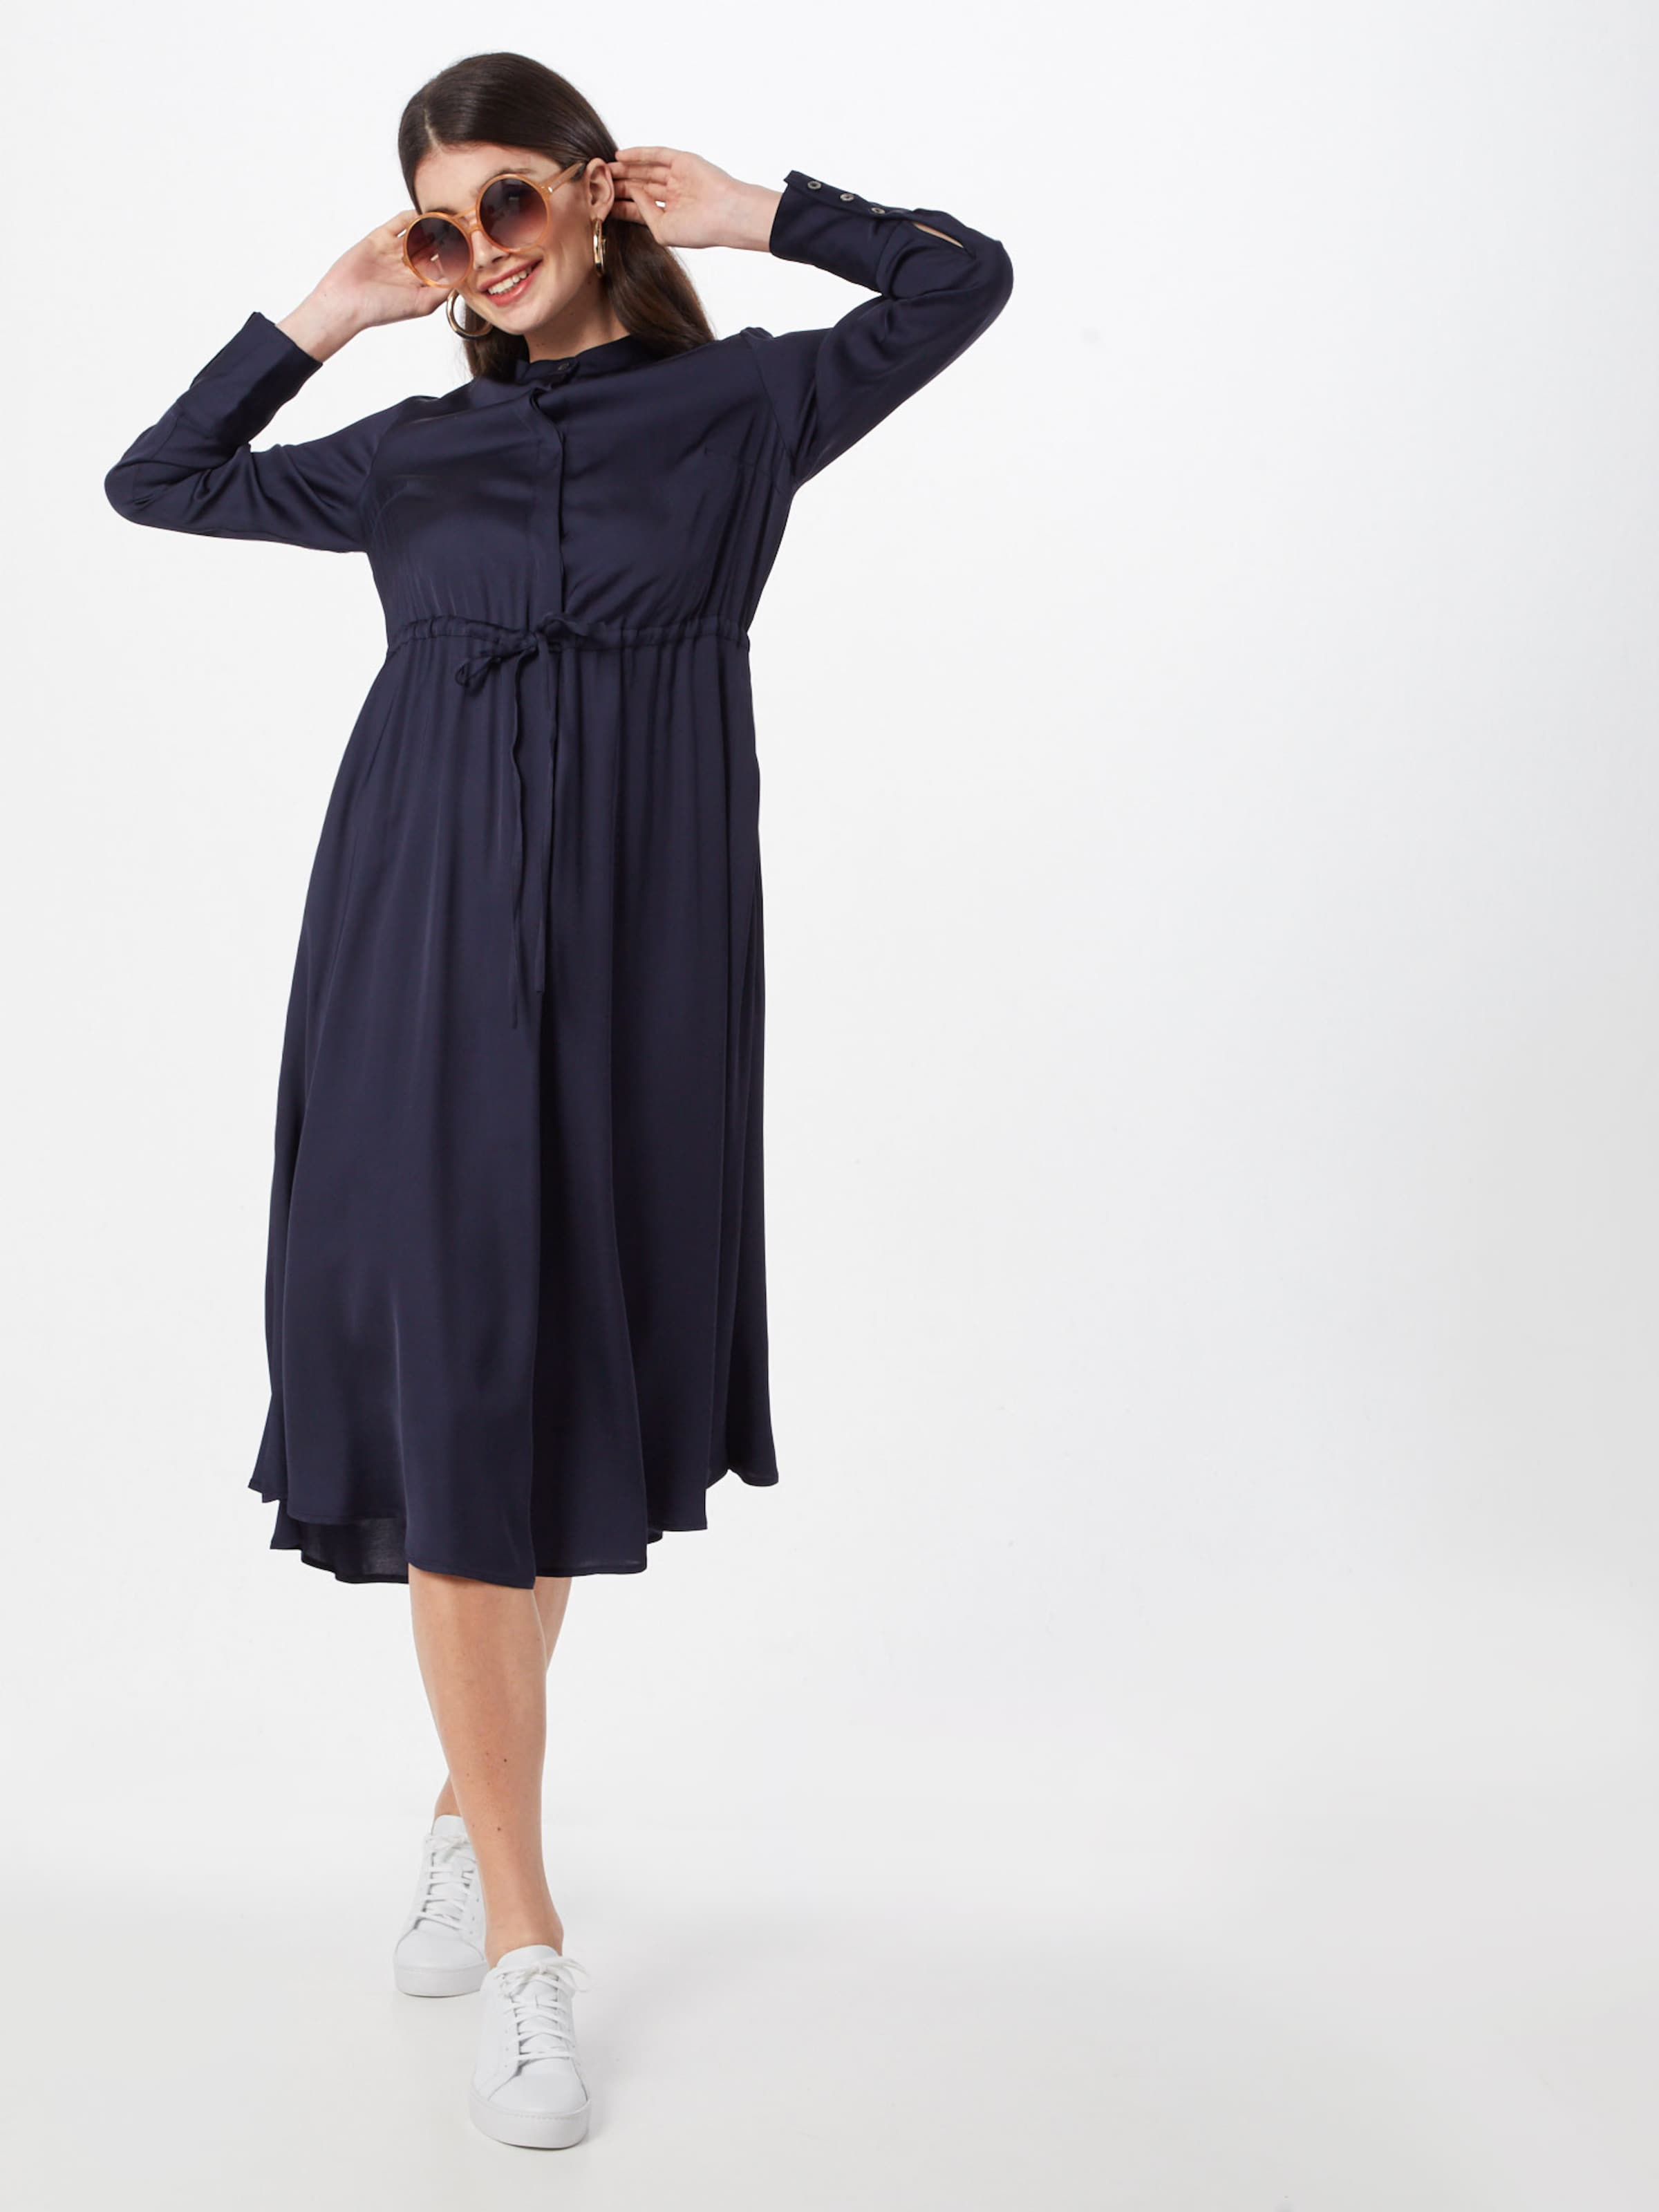 In Navy Paulamp; Kleid Joe 'jmiranda' wPO0knX8